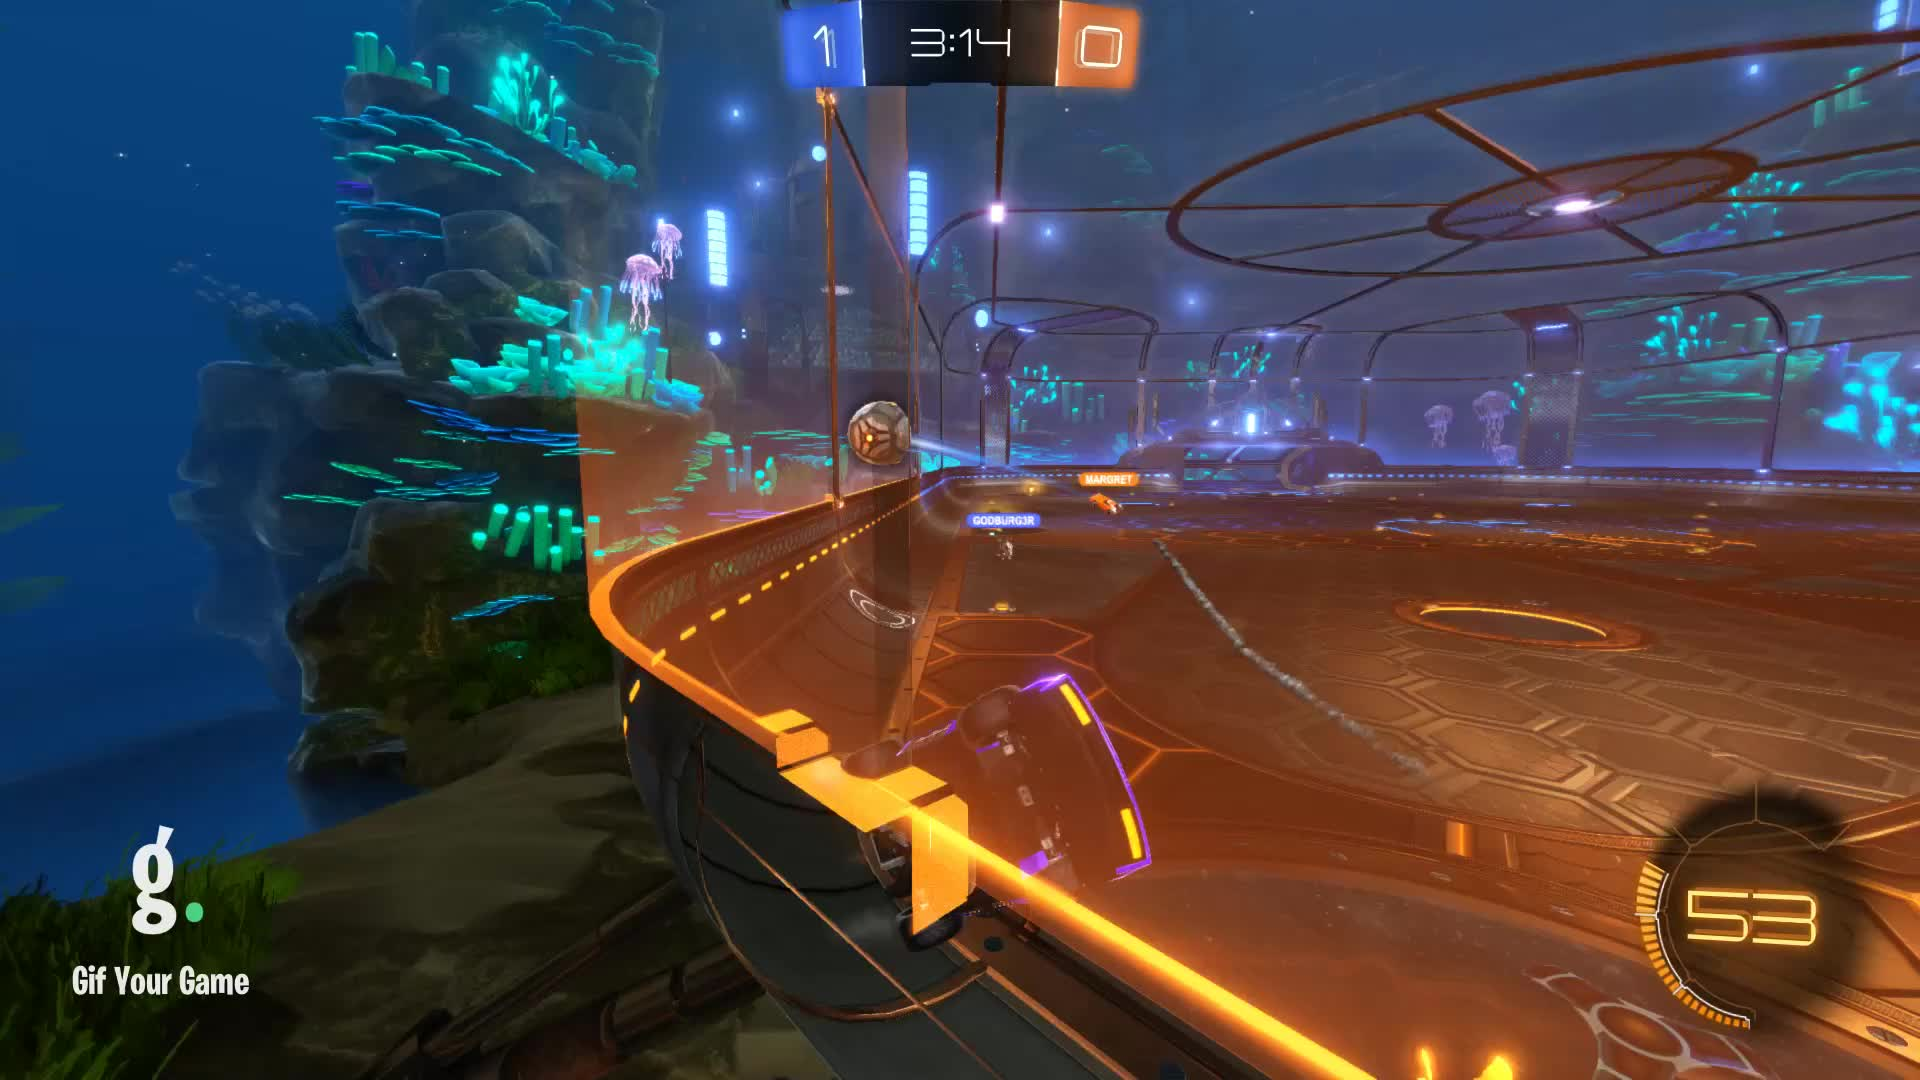 Assist, Gif Your Game, GifYourGame, Rocket League, RocketLeague, SwolSquirrel, Assist 2: SwolSquirrel GIFs